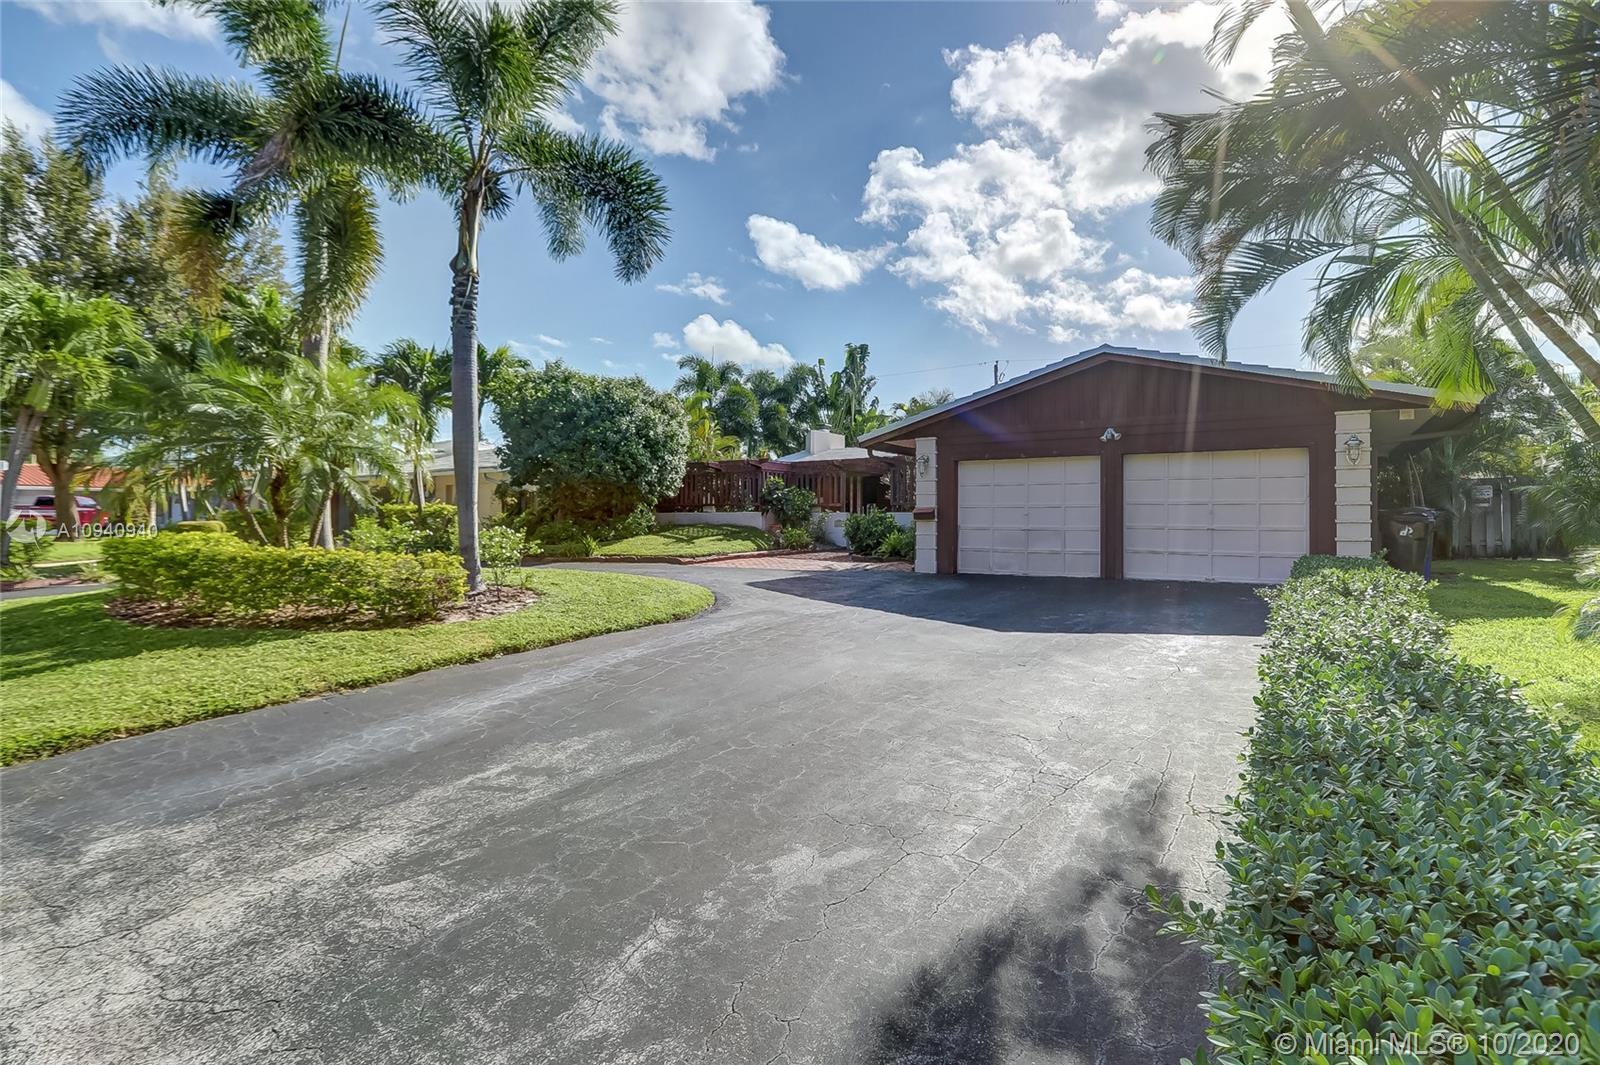 This beautifully renovated move-in ready 2/2 home in the highly sought after Coral Ridges Isles in Ft Lauderdale is just a short bike-ride from the beach. The spacious 1861 total sqft home with an open floor plan includes high quality, brand new flooring throughout, a newly remodeled bathroom and a newly remodeled living room fire place. Both bedrooms are very large and spacious. The kitchen has gorgeous granite countertops, premium hardwood cabinets. Kitchen also has a large ice maker and a wall-mount pot filler faucet. The backyard has a screened in porch. This beautiful home is equipped with central A/C and Bermuda style roofing. this house is a must see!